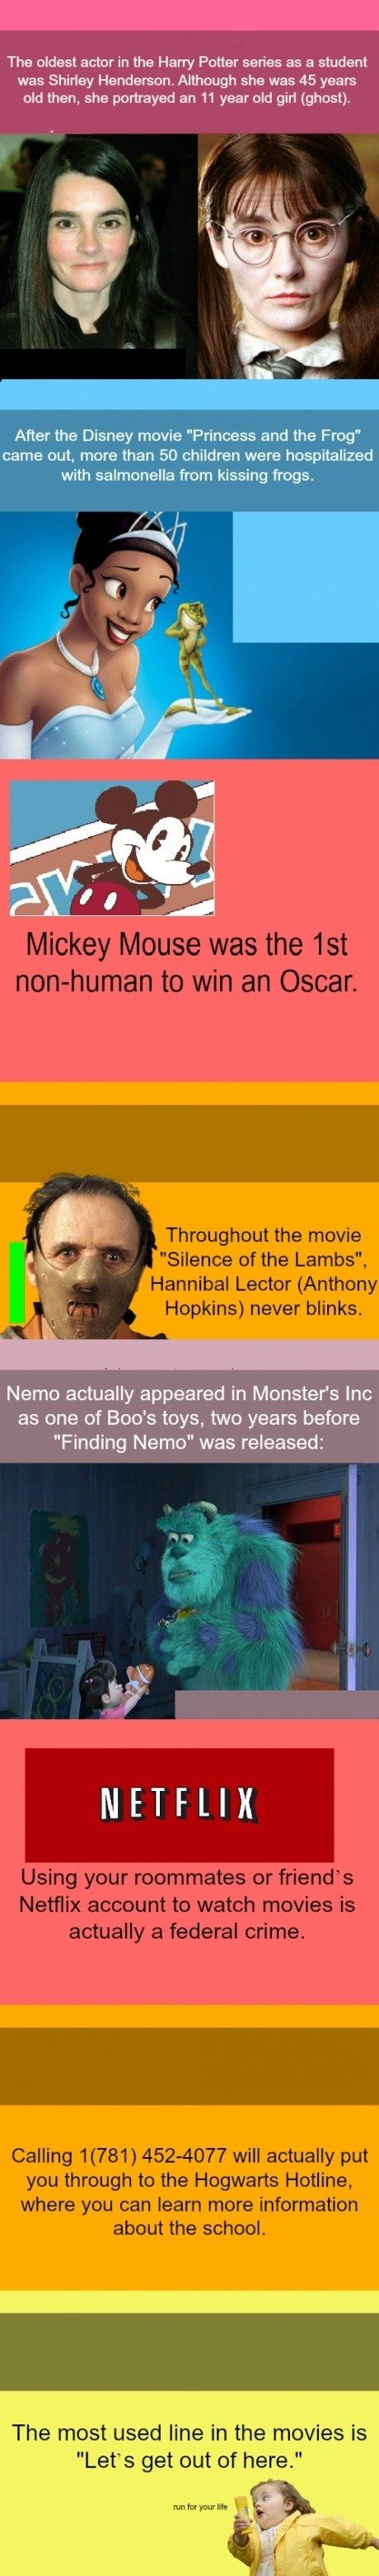 Interesting movie related facts